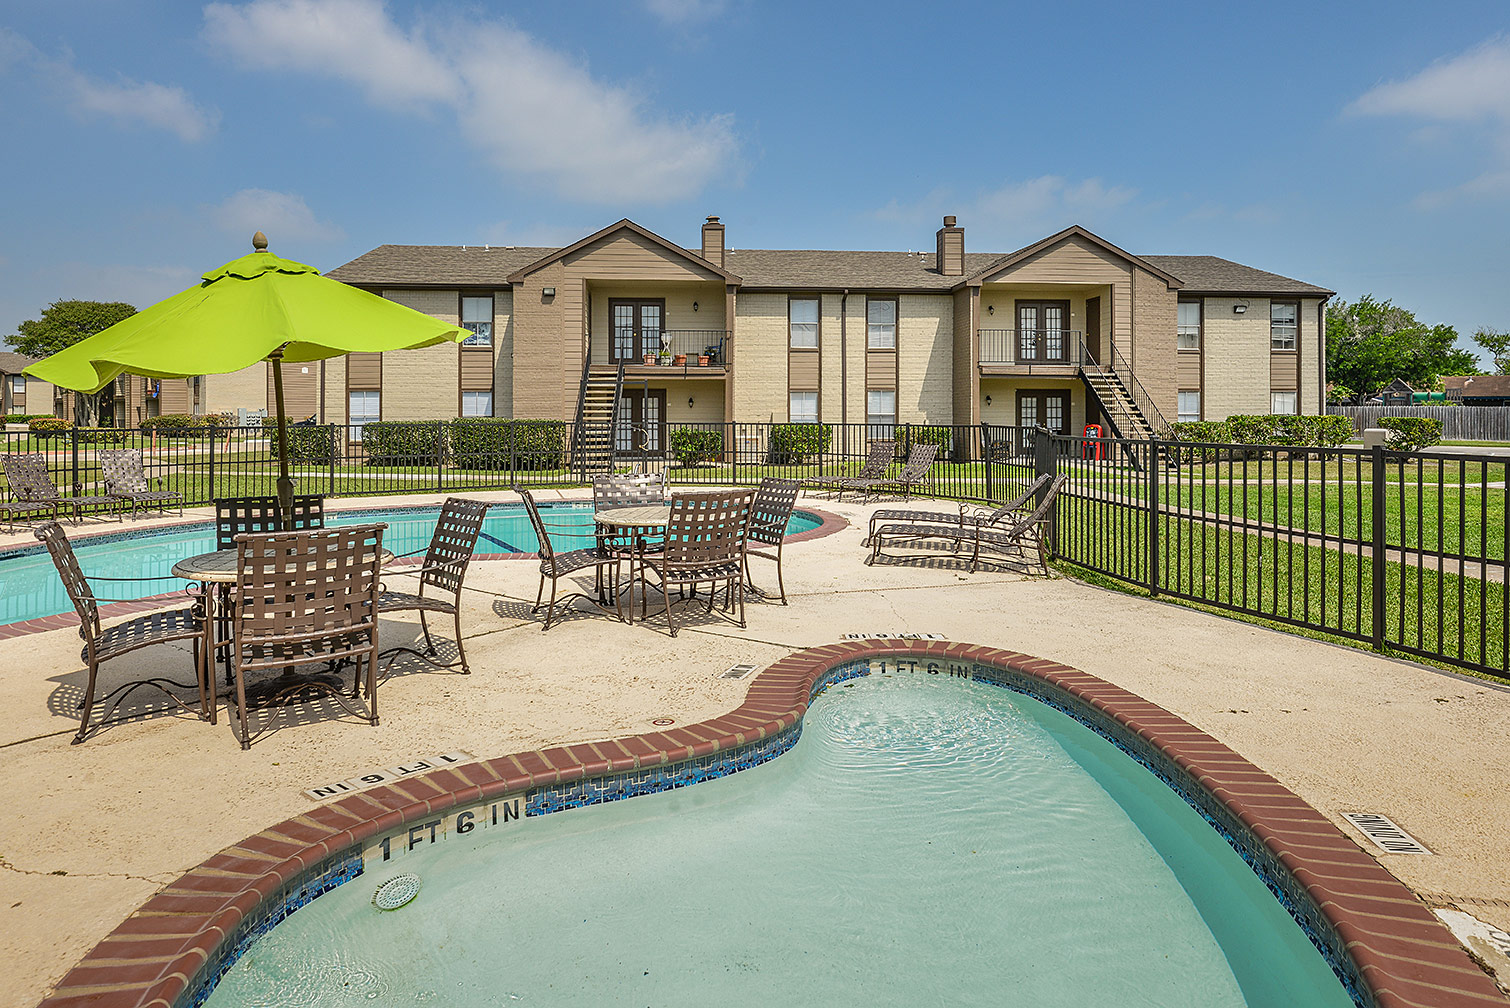 Candlewood apartments | outdoor pool